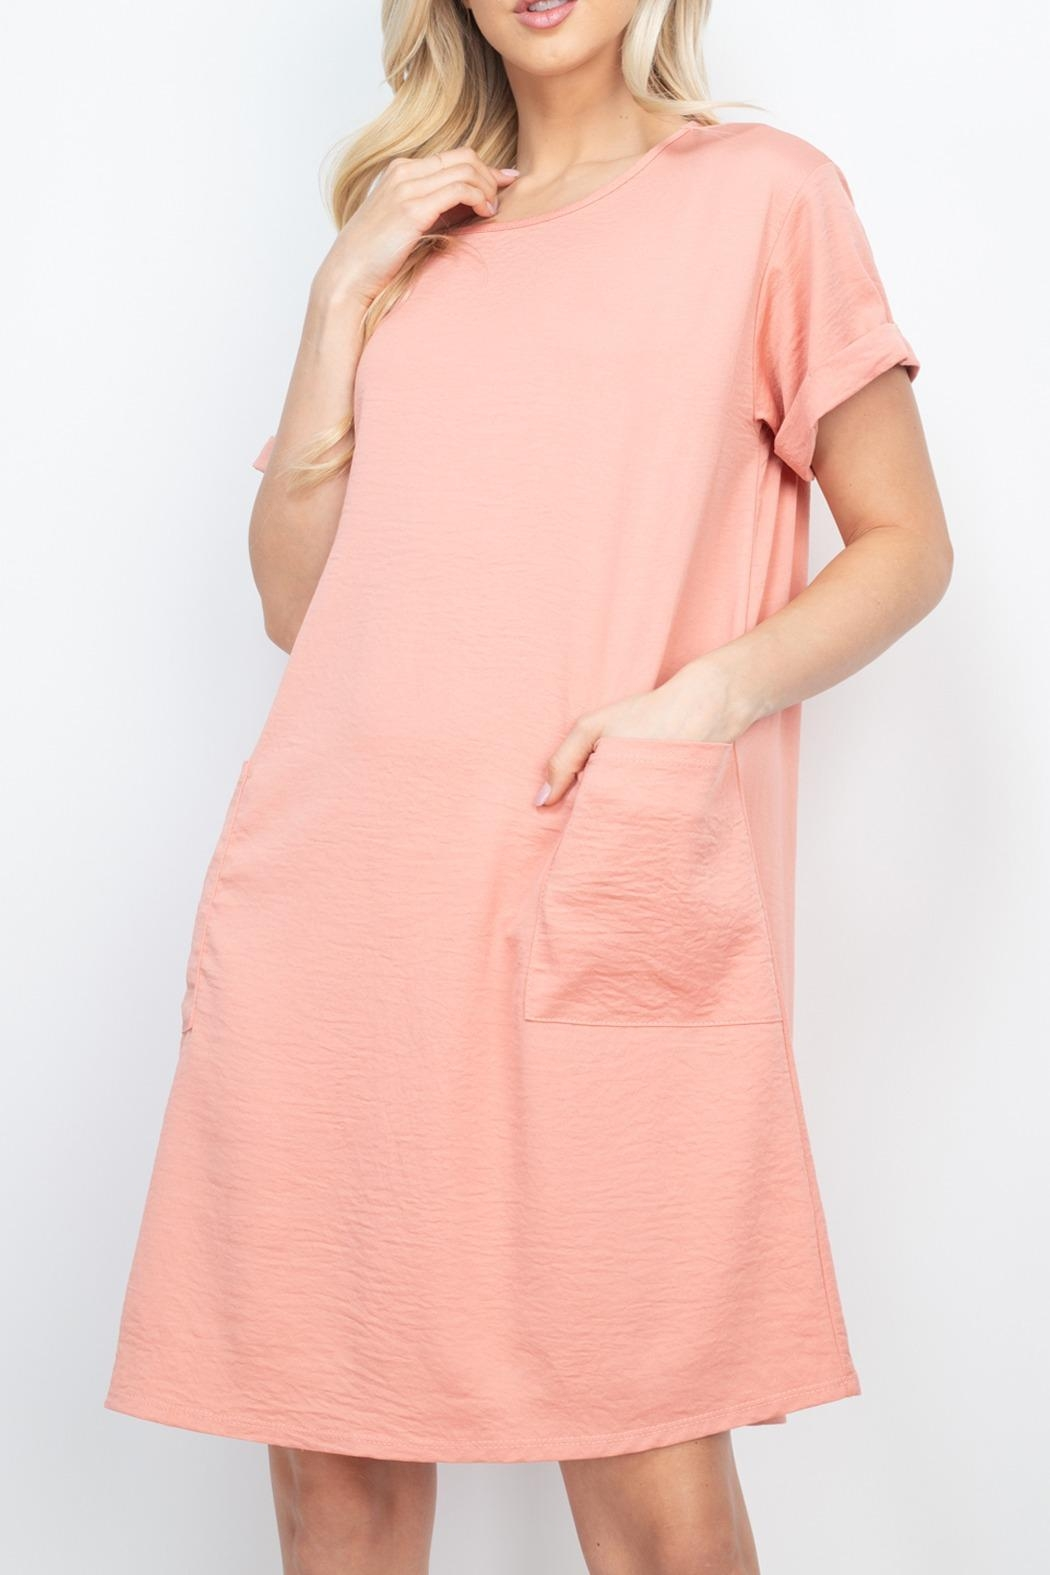 Riah Fashion Rolled-Sleeve-Front-Pocket-Solid-Dress - Front Full Image